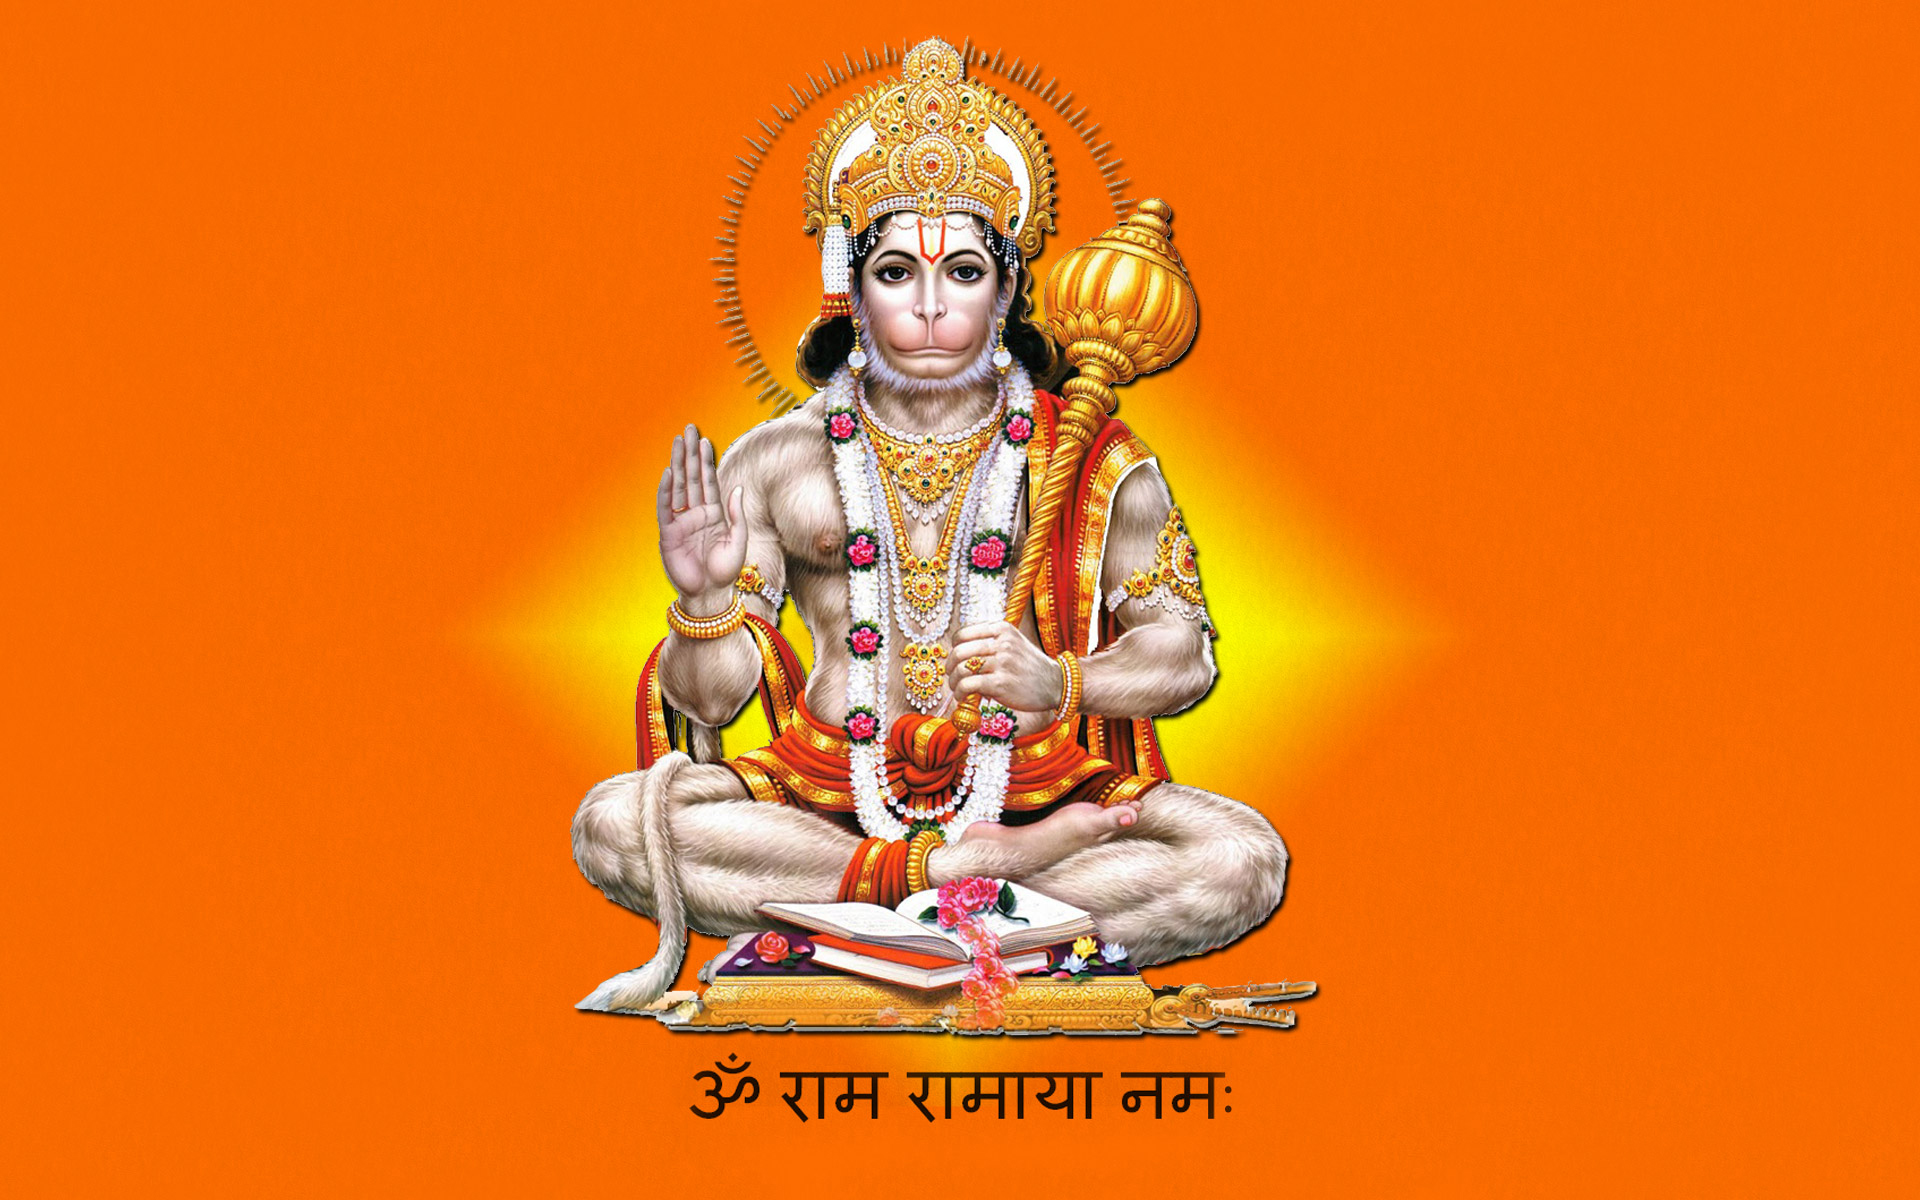 happy hanuman jayanti 2017 images wallpapers whatsapp dp pics